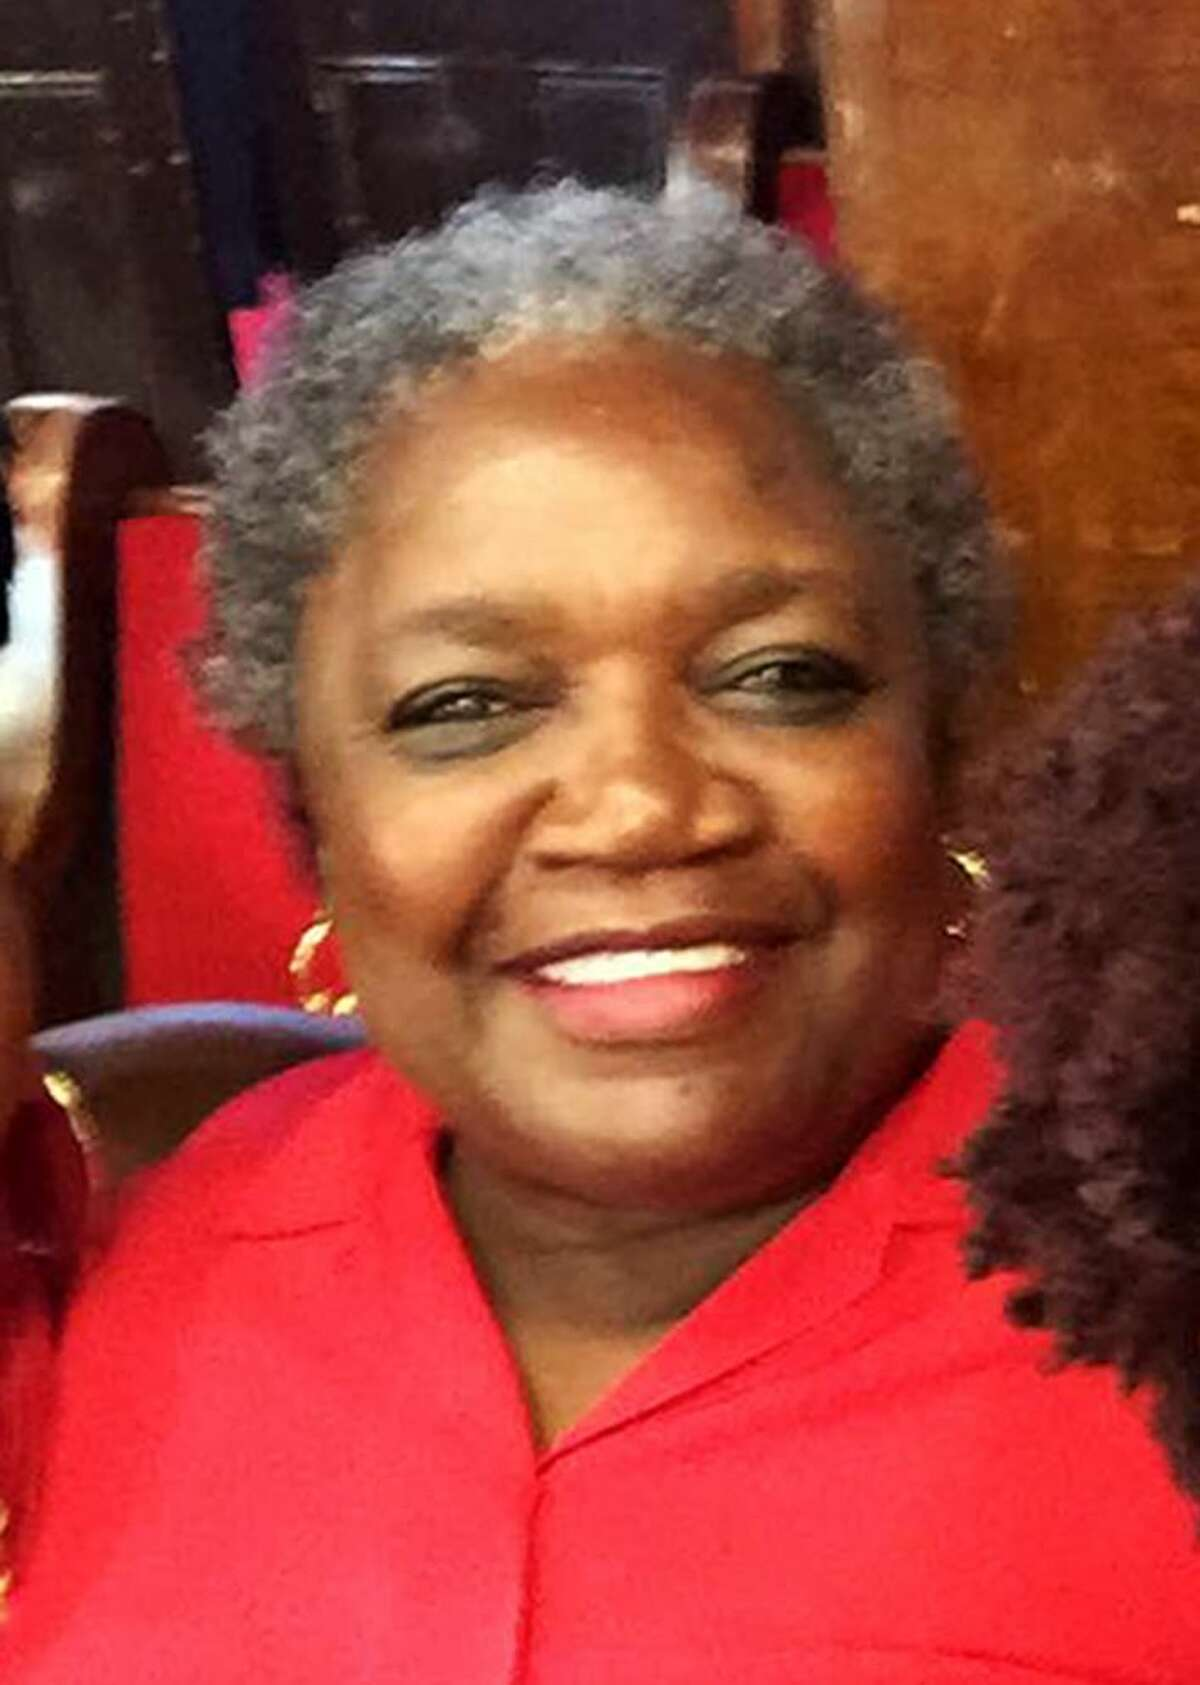 This Sunday, June 14, 2015 photo provided by Najee Washington shows her grandmother Ethel Lance of Charleston, S.C. Lance, 70, was one of nine people killed Wednesday, June 17, 2015, when a white man opened fire during a prayer meeting inside a historic black church in Charleston. (Courtesy of Najee Washington)